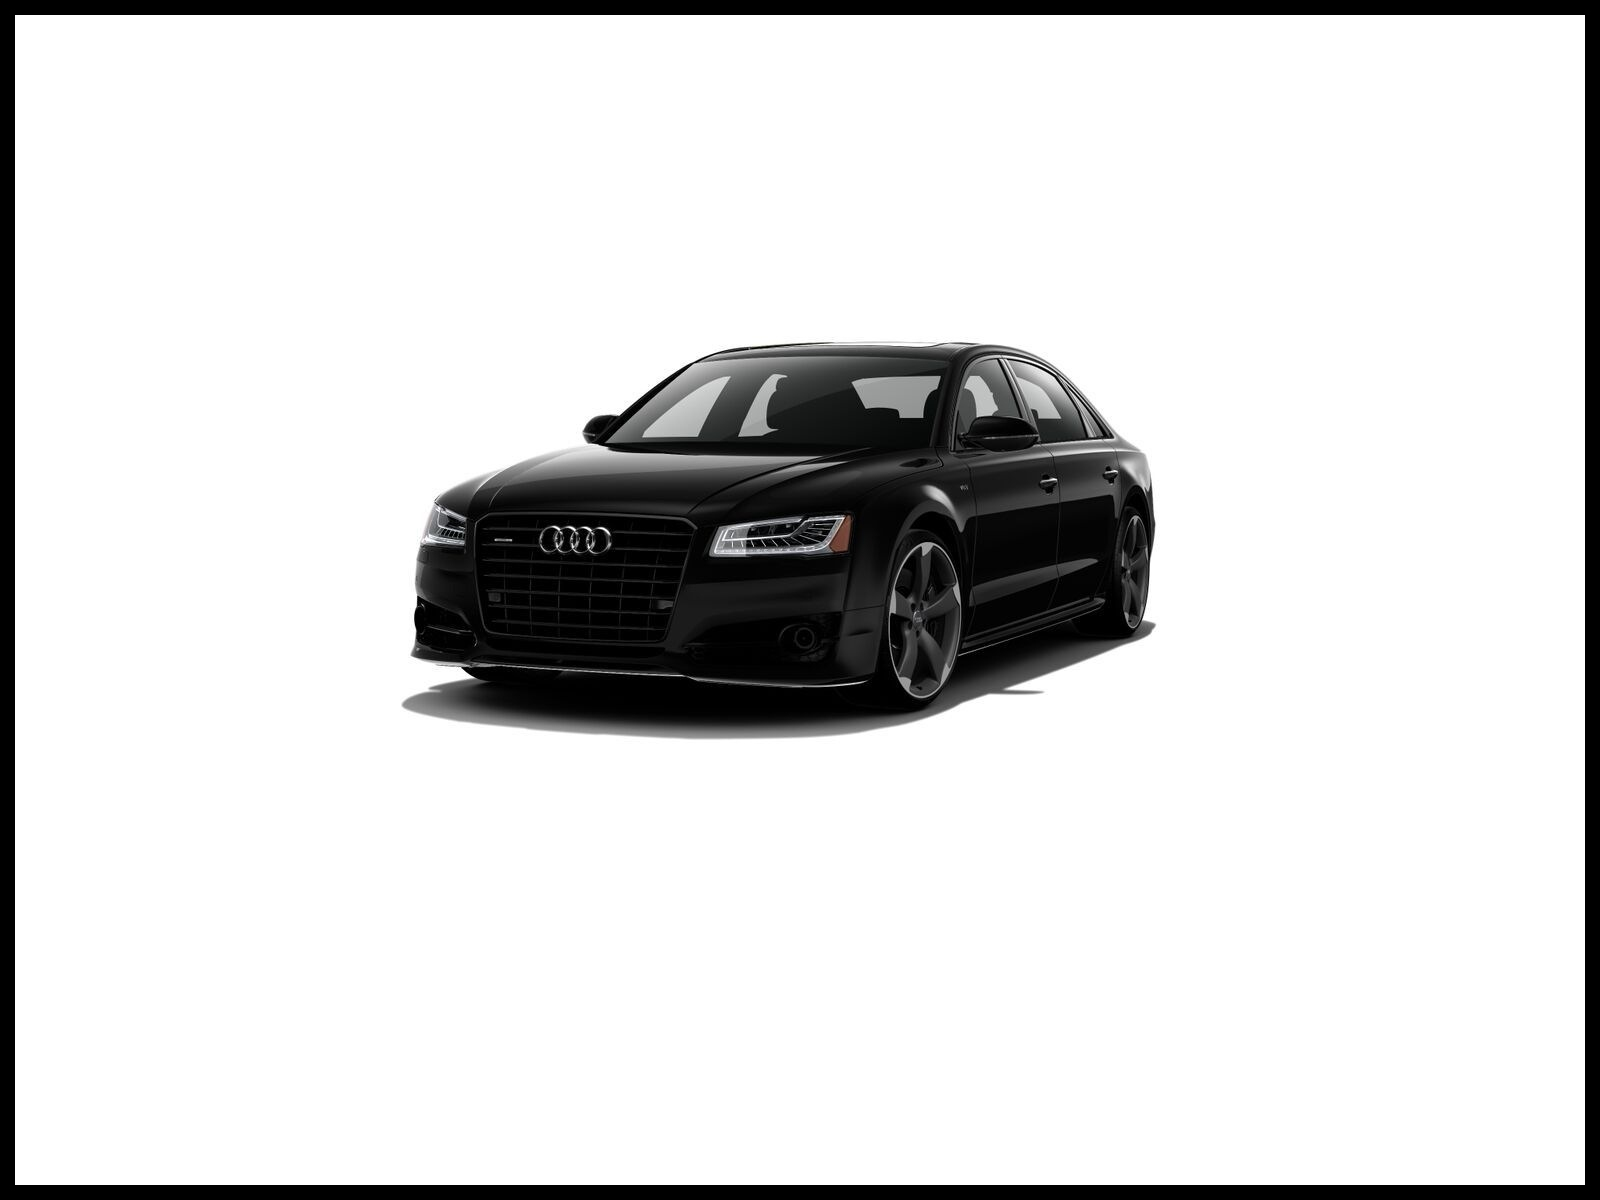 Build An Audi Elegant Build Your Own Custom Audi A8 L Audi Usa Build